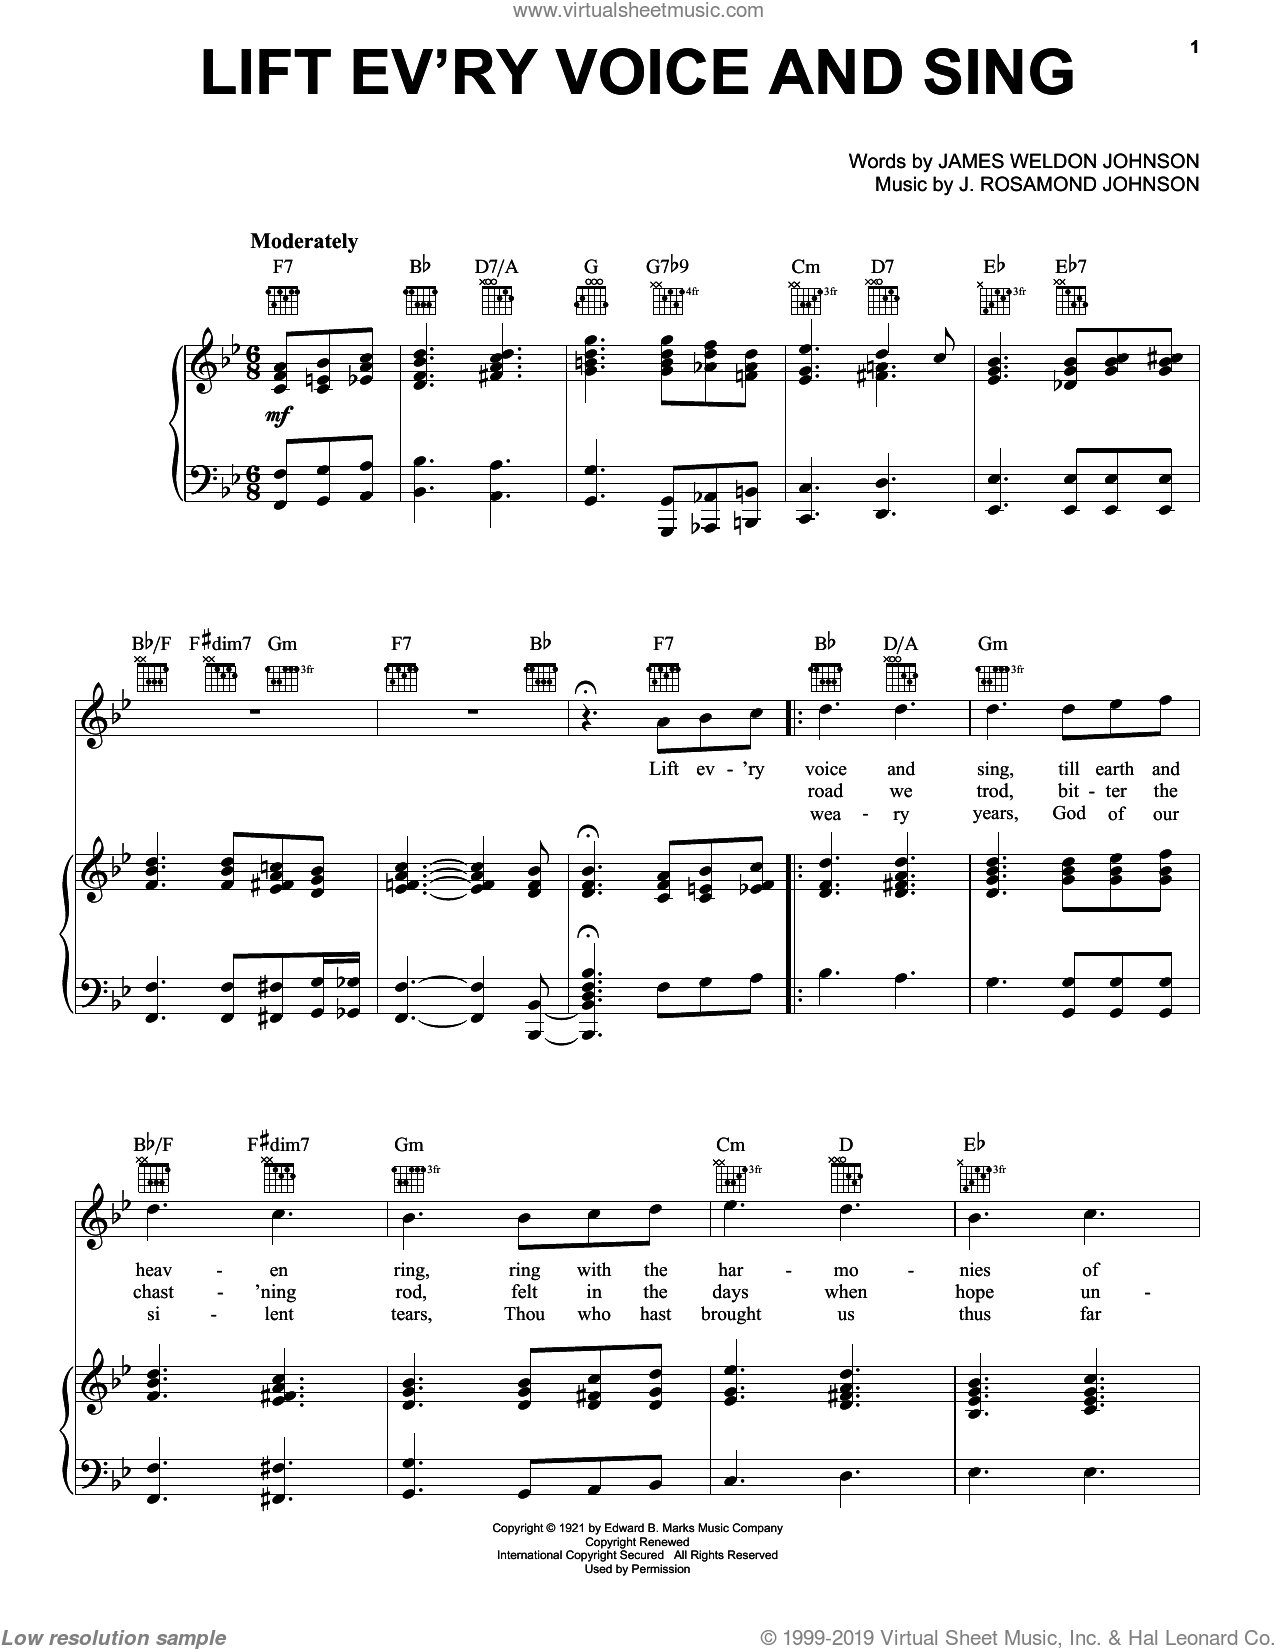 Lift Ev'ry Voice And Sing sheet music for voice, piano or guitar by J. Rosamond Johnson and James Weldon Johnson, intermediate. Score Image Preview.